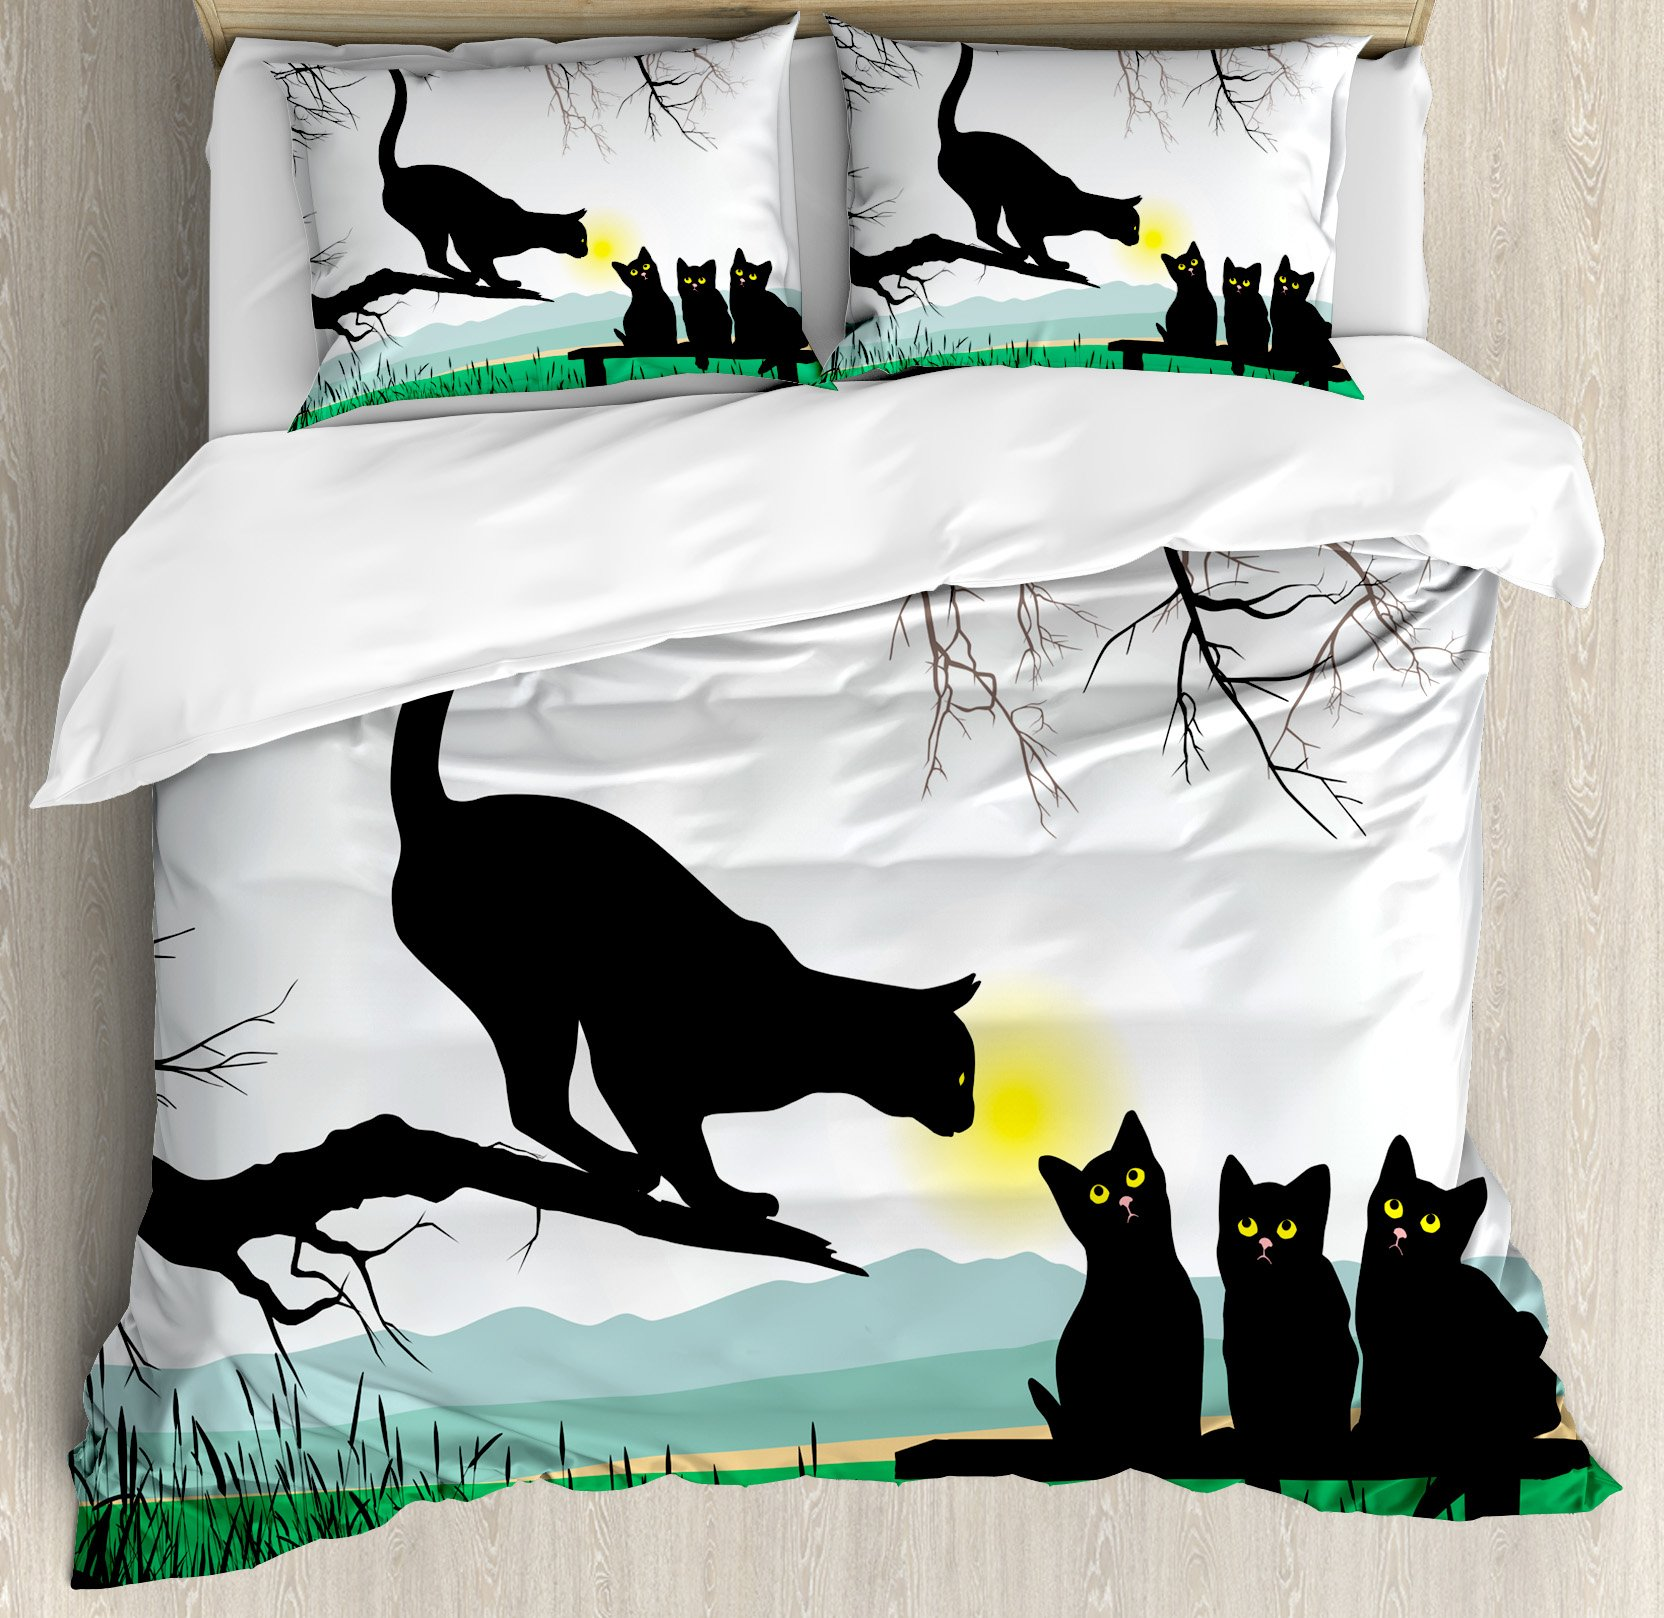 Cat Duvet Cover Set King Size by Ambesonne, Mother Cat on Tree Branch and Baby Kittens in Park Best Friends I Love My Kitty Graphic, Decorative 3 Piece Bedding Set with 2 Pillow Shams, Multi